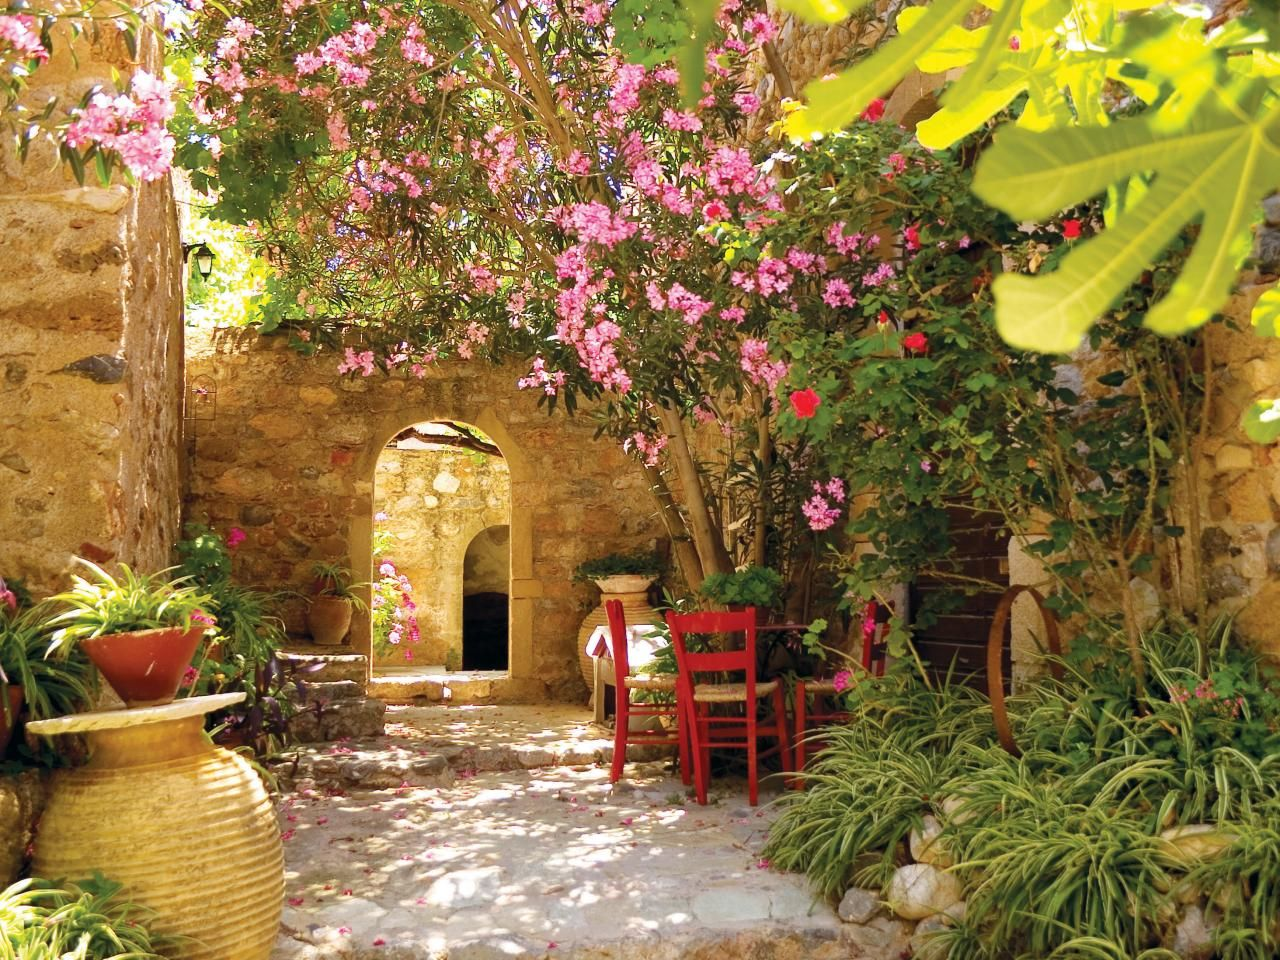 Greek Courtyard Garden   Bing Images